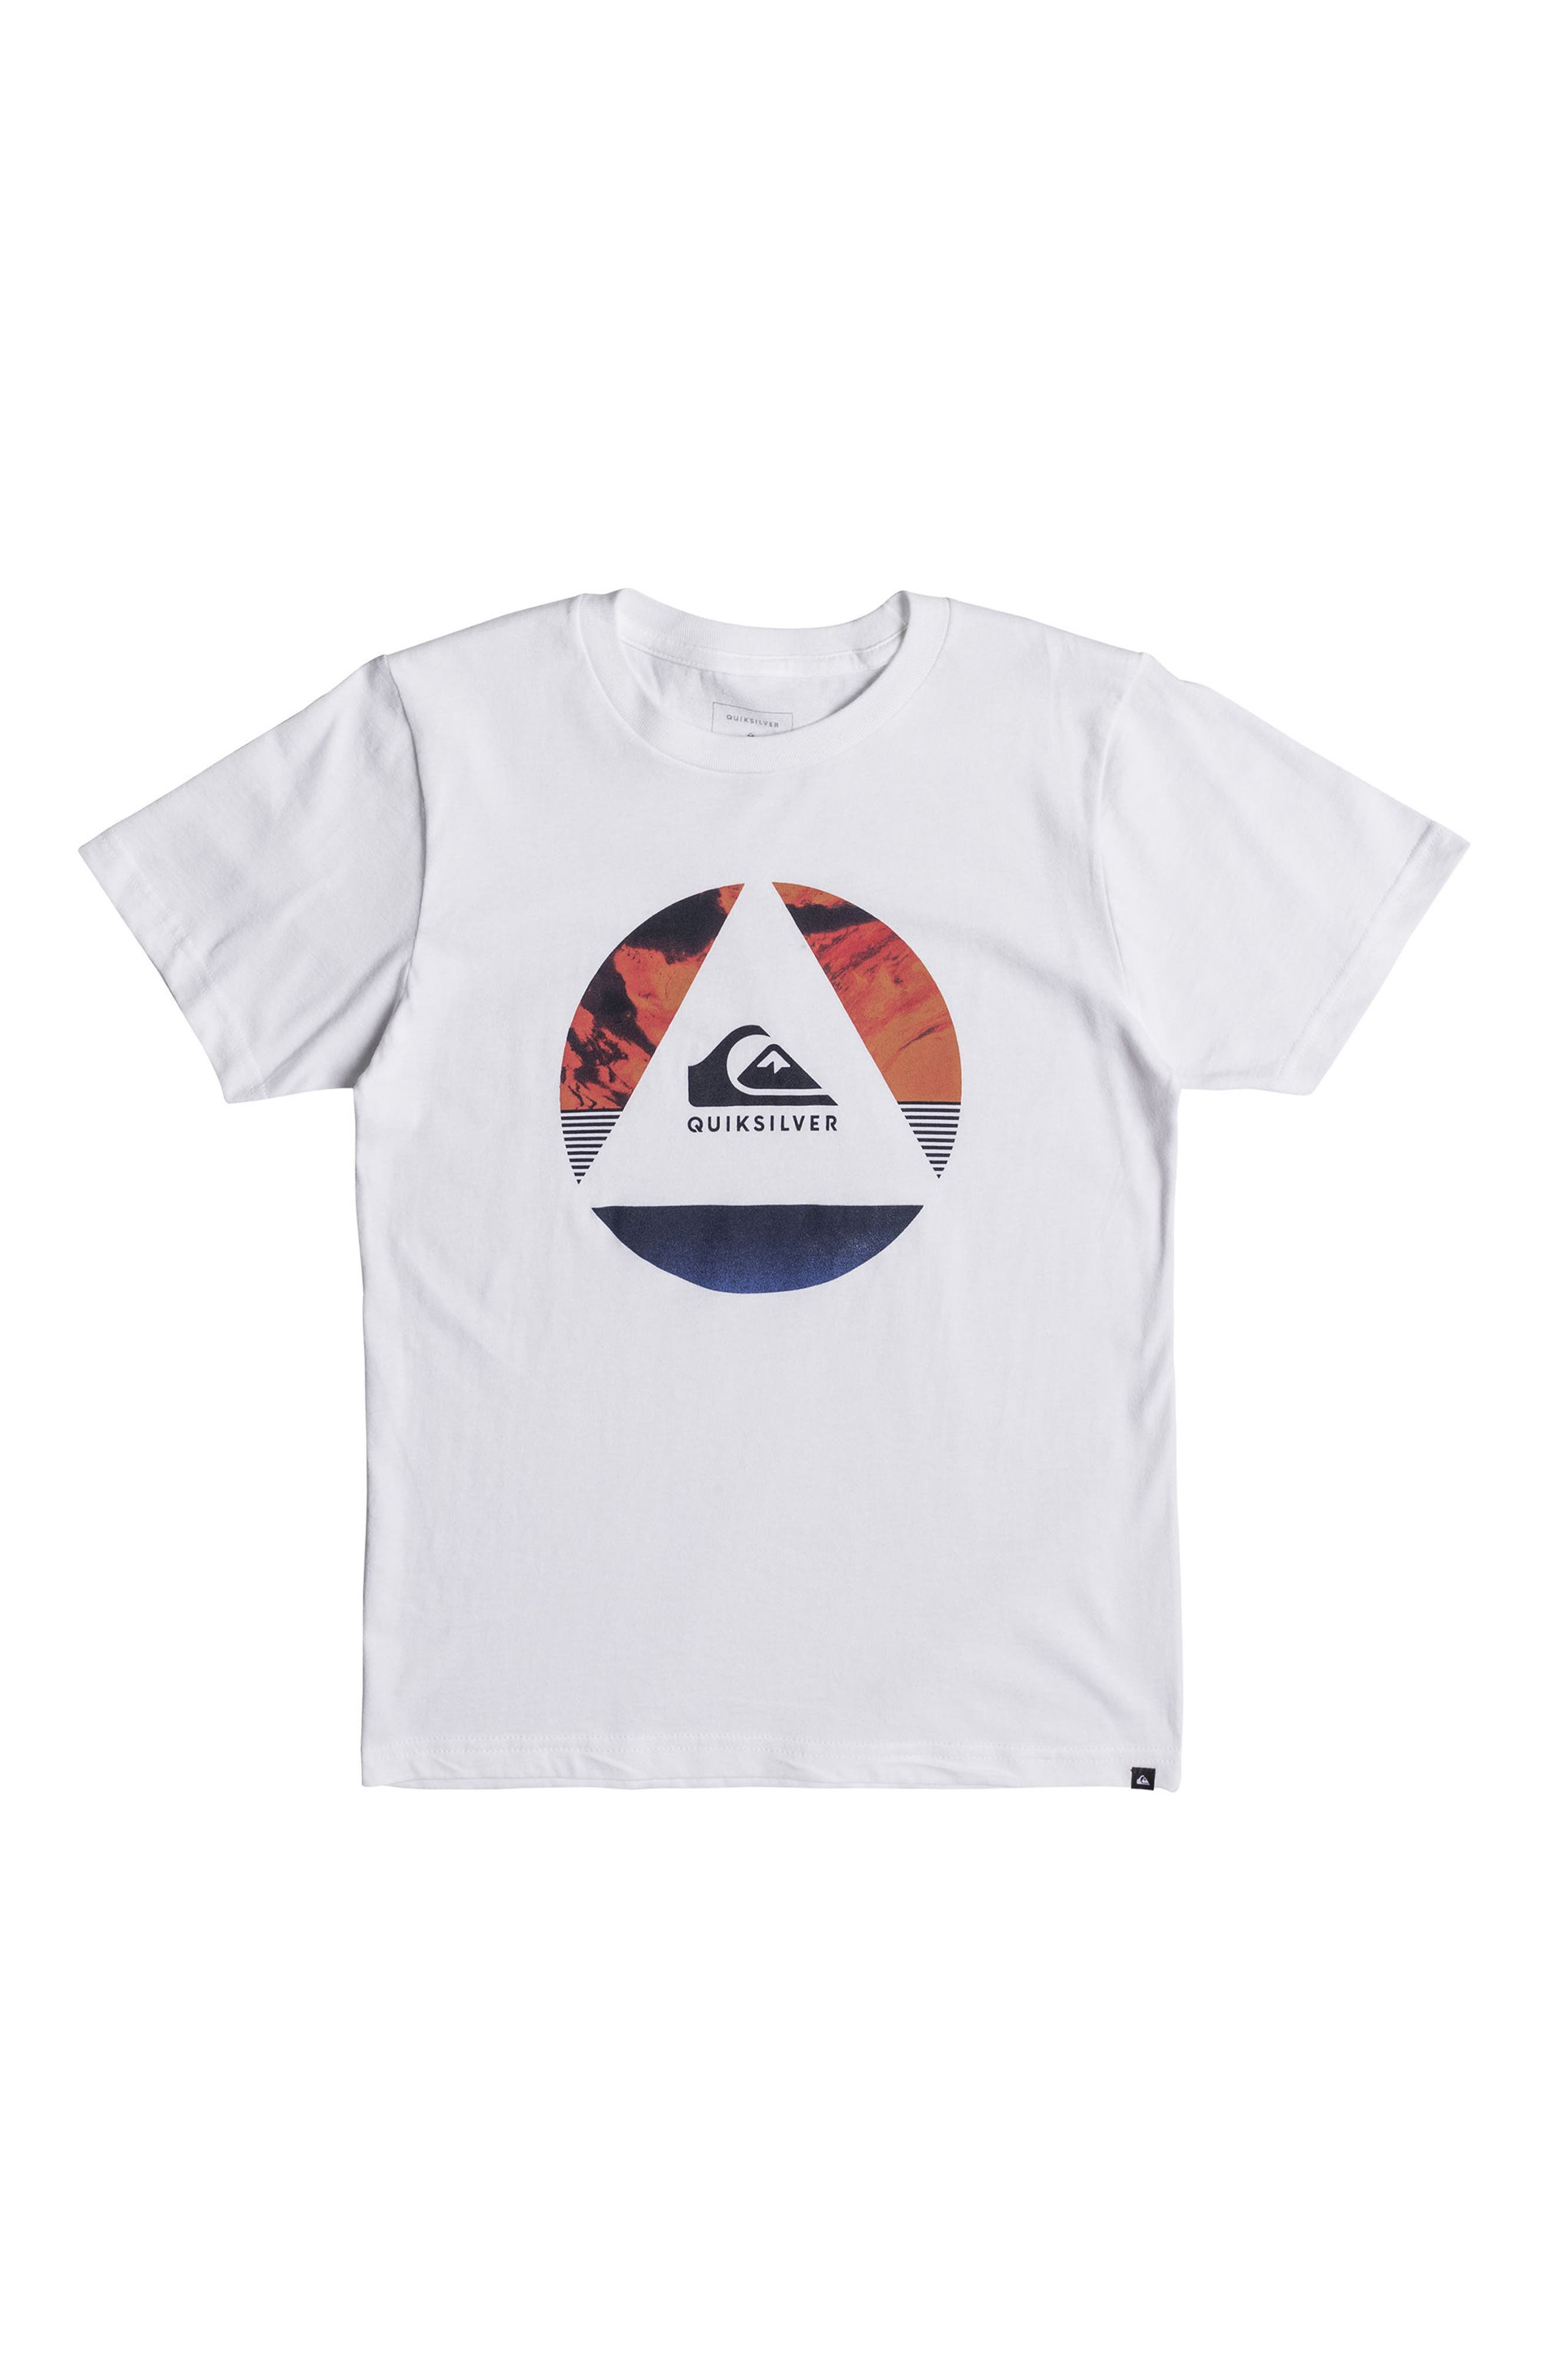 Quiksilver Fluid Turns Graphic T-Shirt (Big Boys)